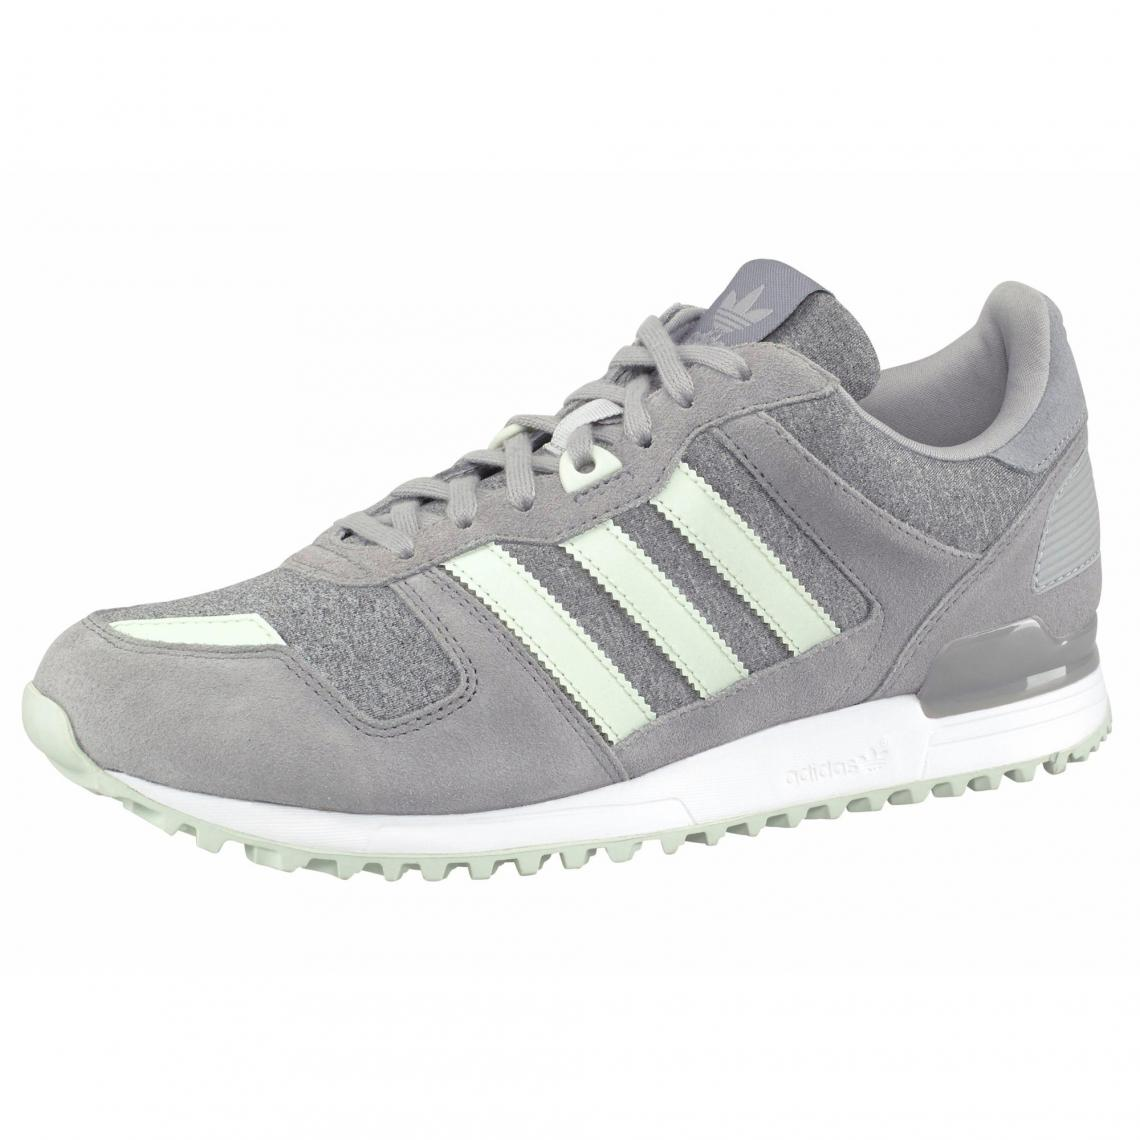 timeless design cf2a8 79238 Chaussures de running ZX 700 W Adidas Originals Femme Adidas Originals Femme